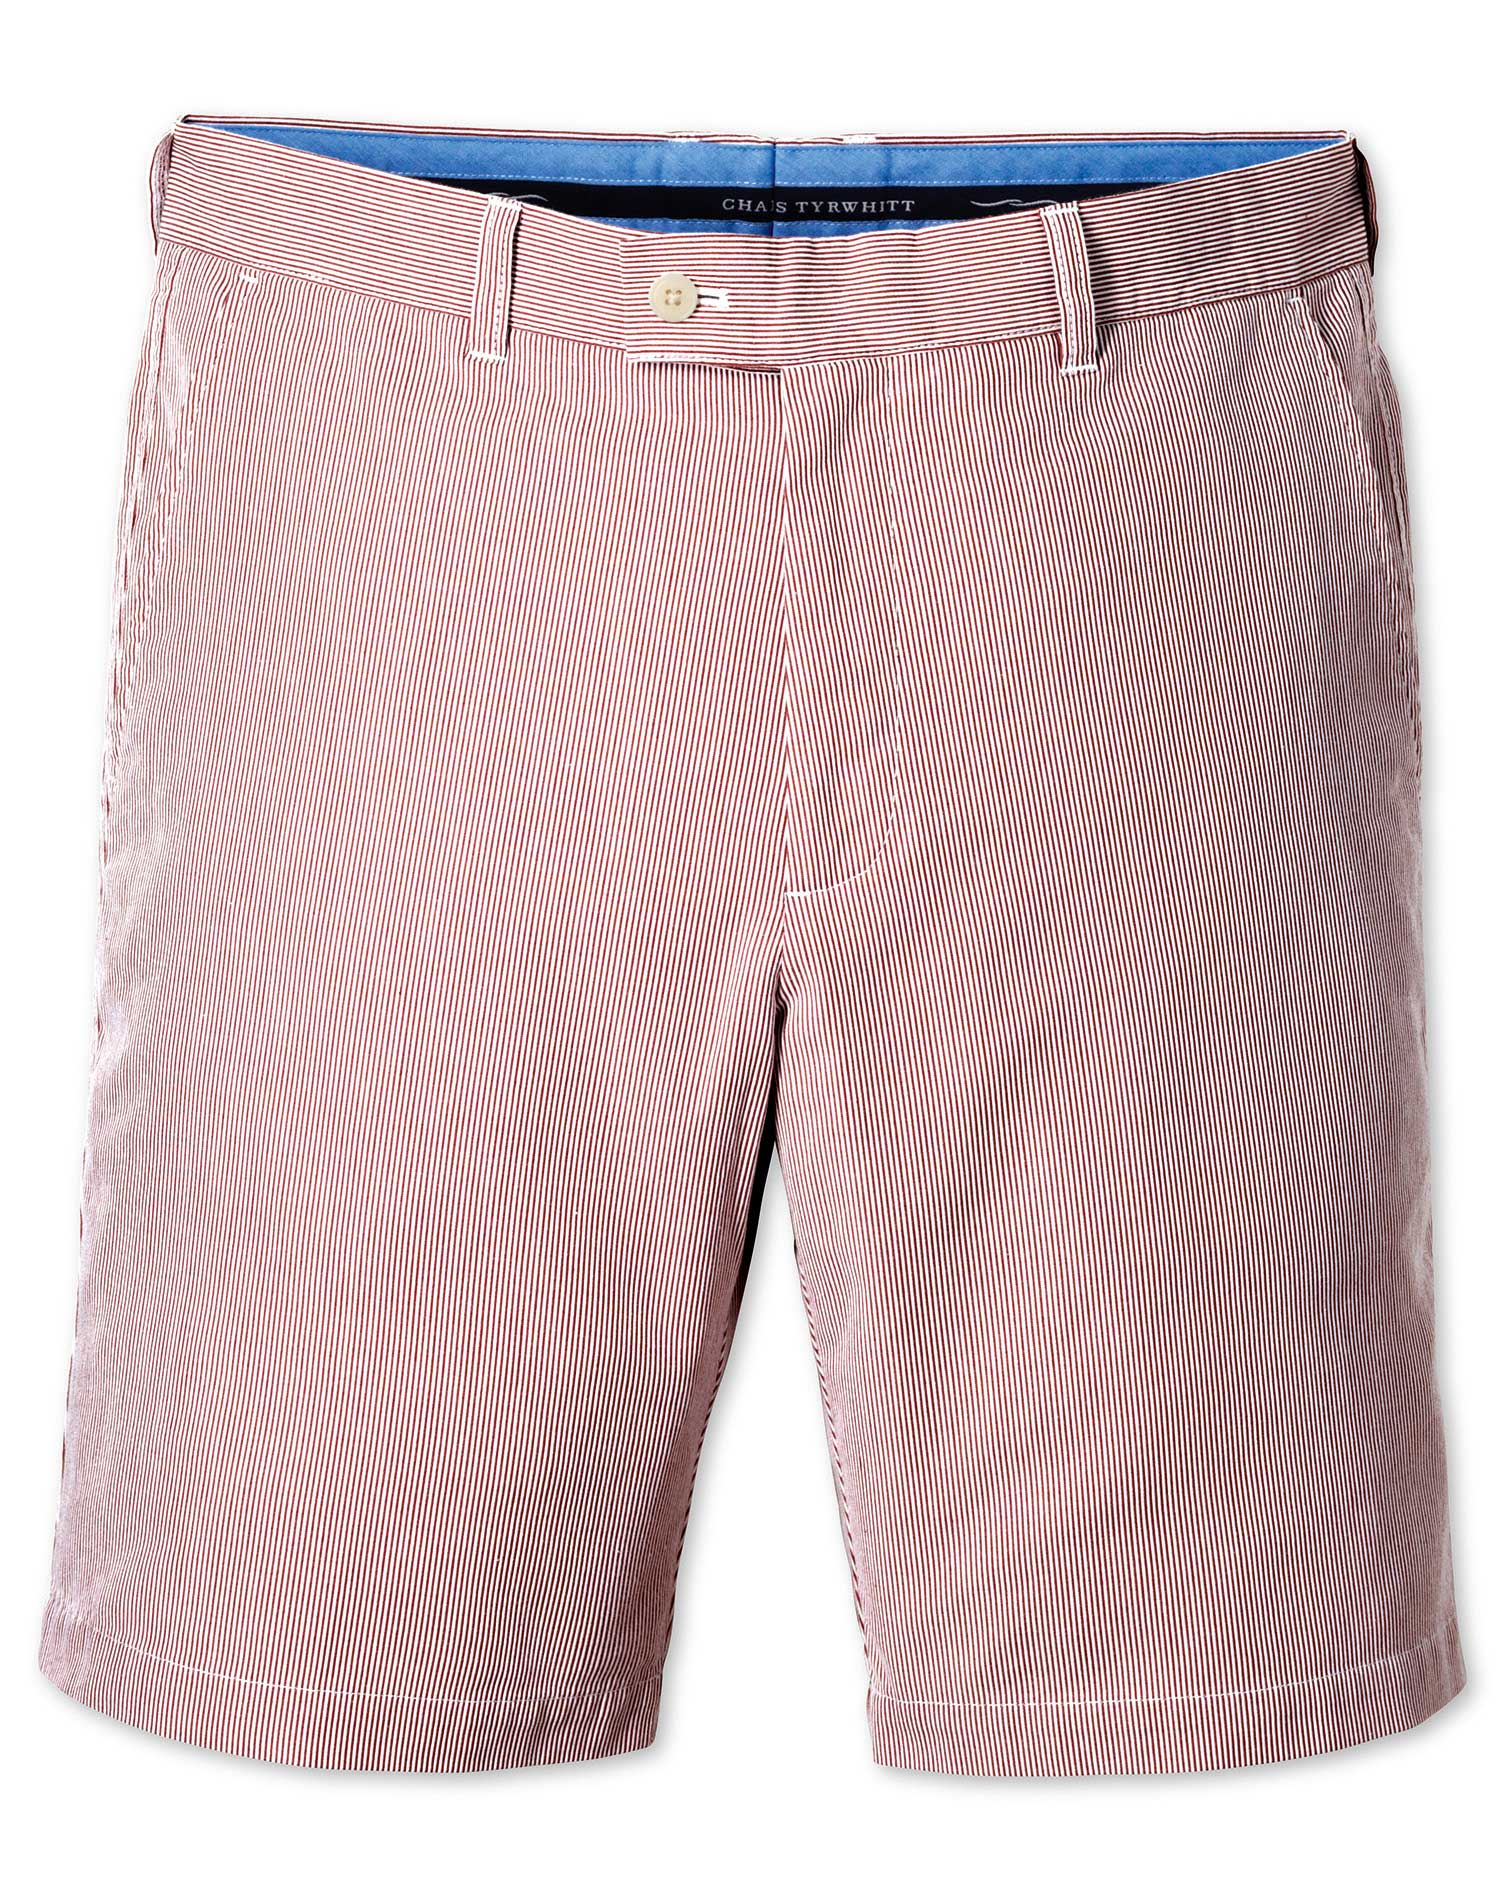 Red Slim Fit Hairline Stripe Cotton Shorts Size 38 by Charles Tyrwhitt